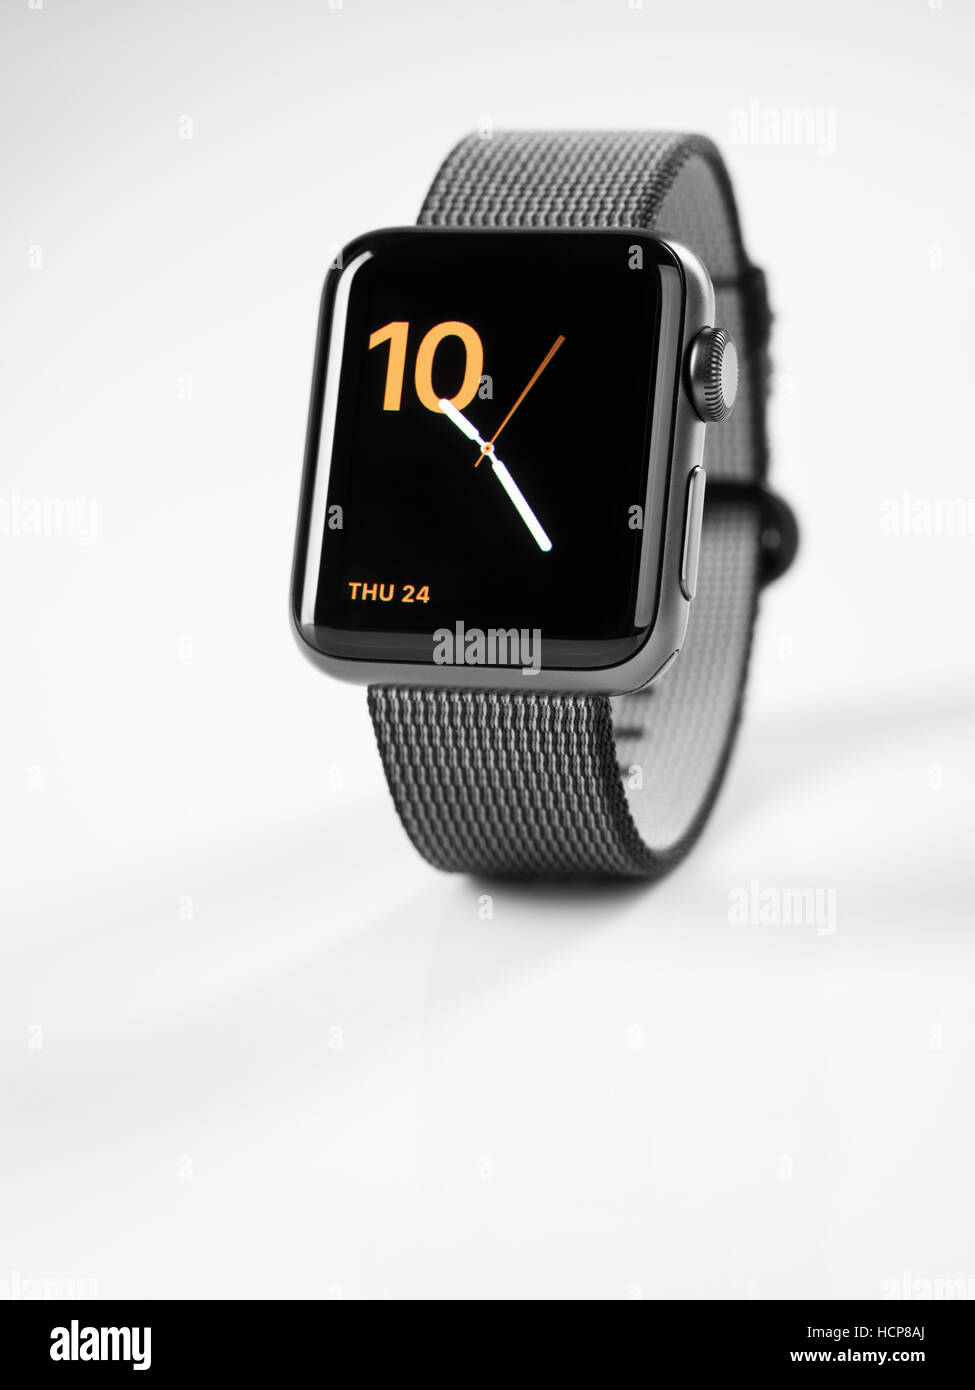 Apple Watch series 2 smartwatch with analog clock dial displayed, white background - Stock Image